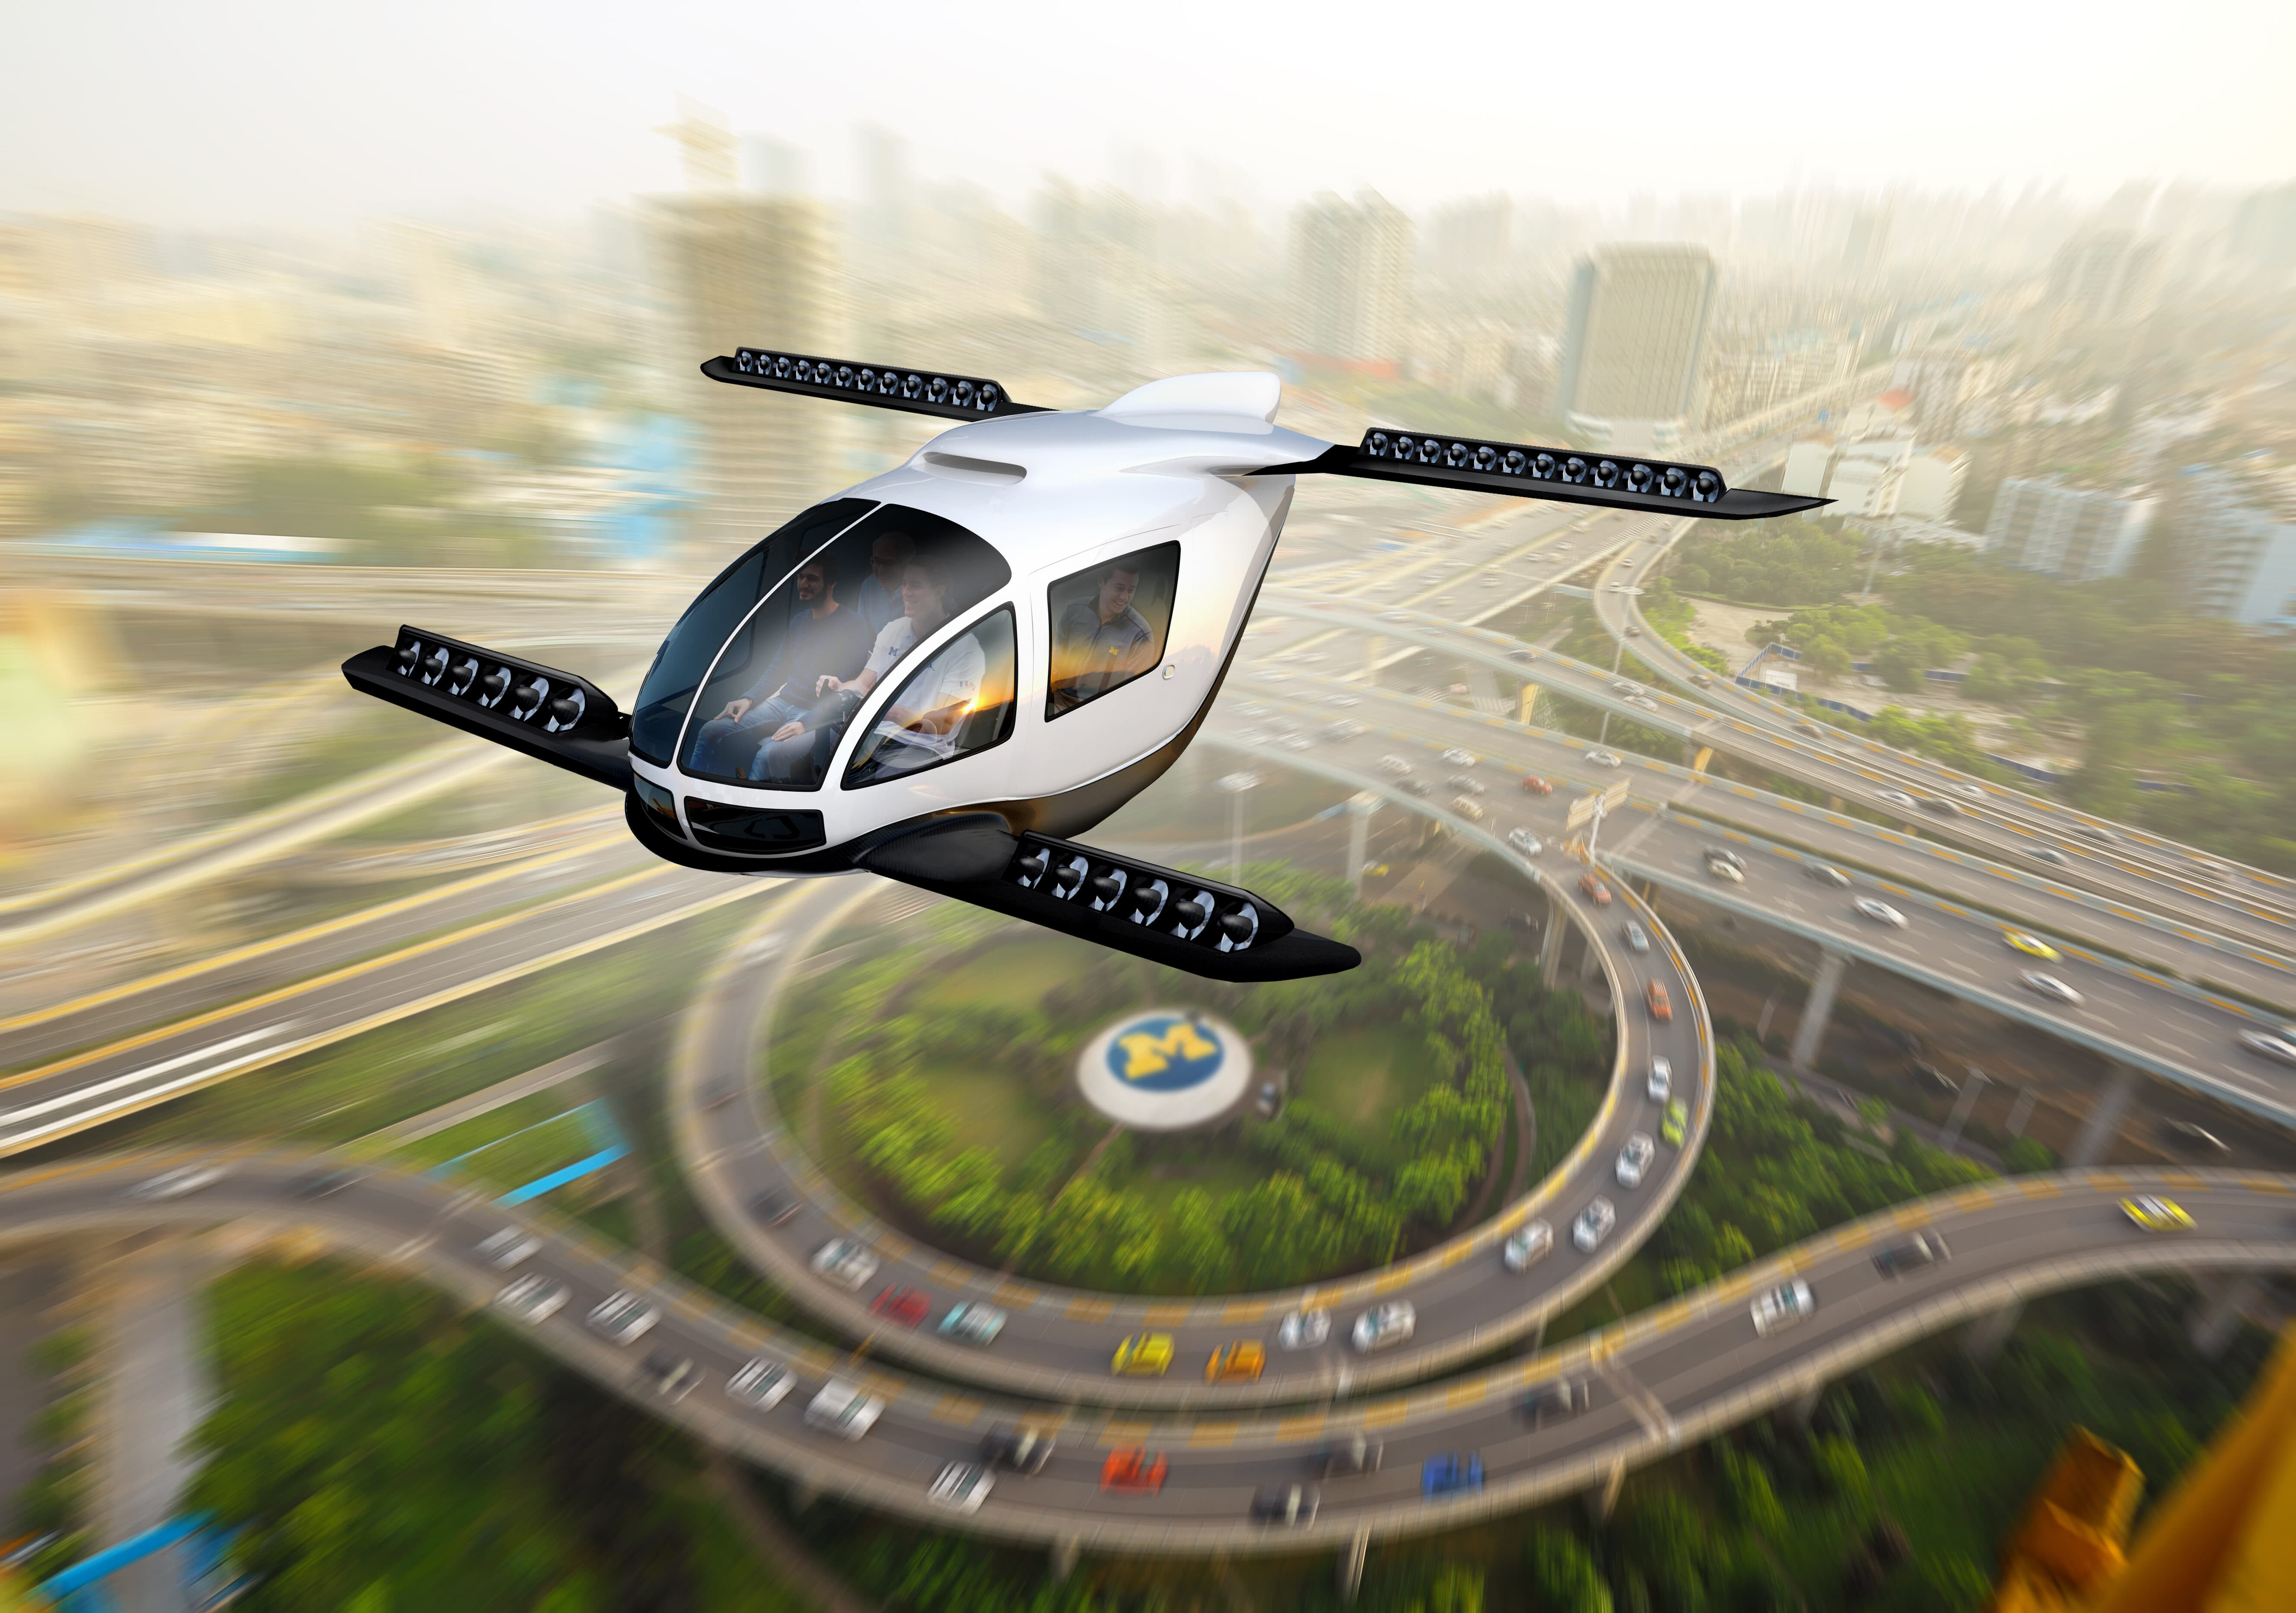 Electric VTOL Flying Cars Have a Role With Clean and Efficient Transportation 1